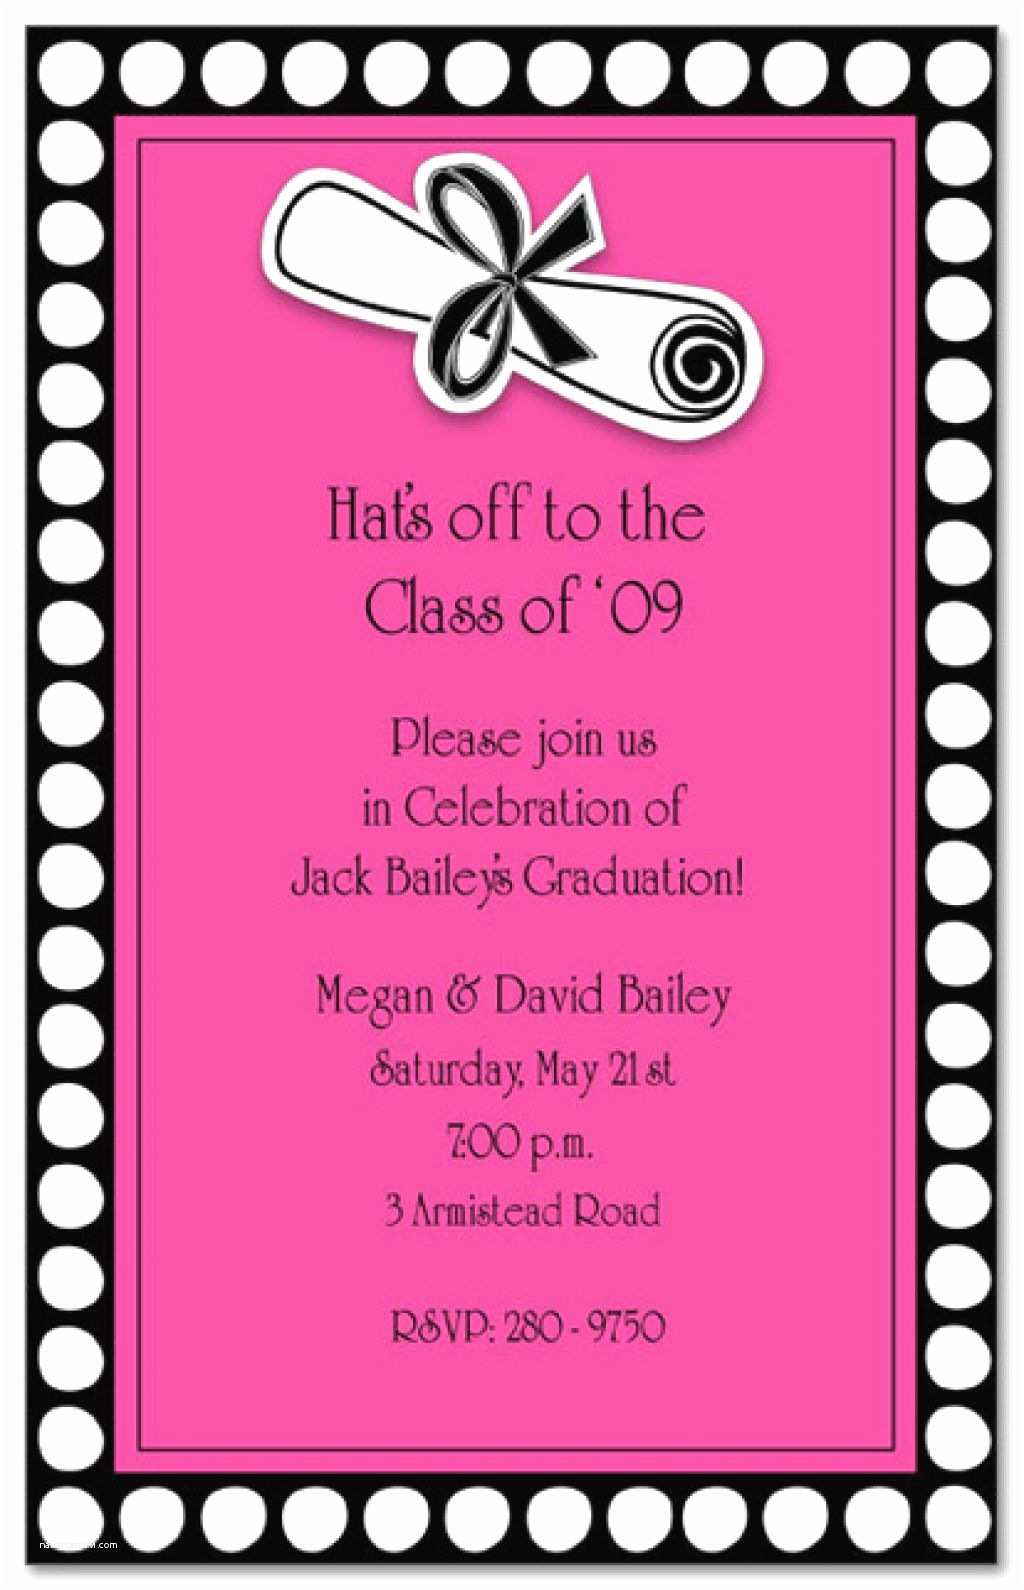 College Graduation Party Invitation Wording Sample Wording for Graduation Party Invitations Abou and